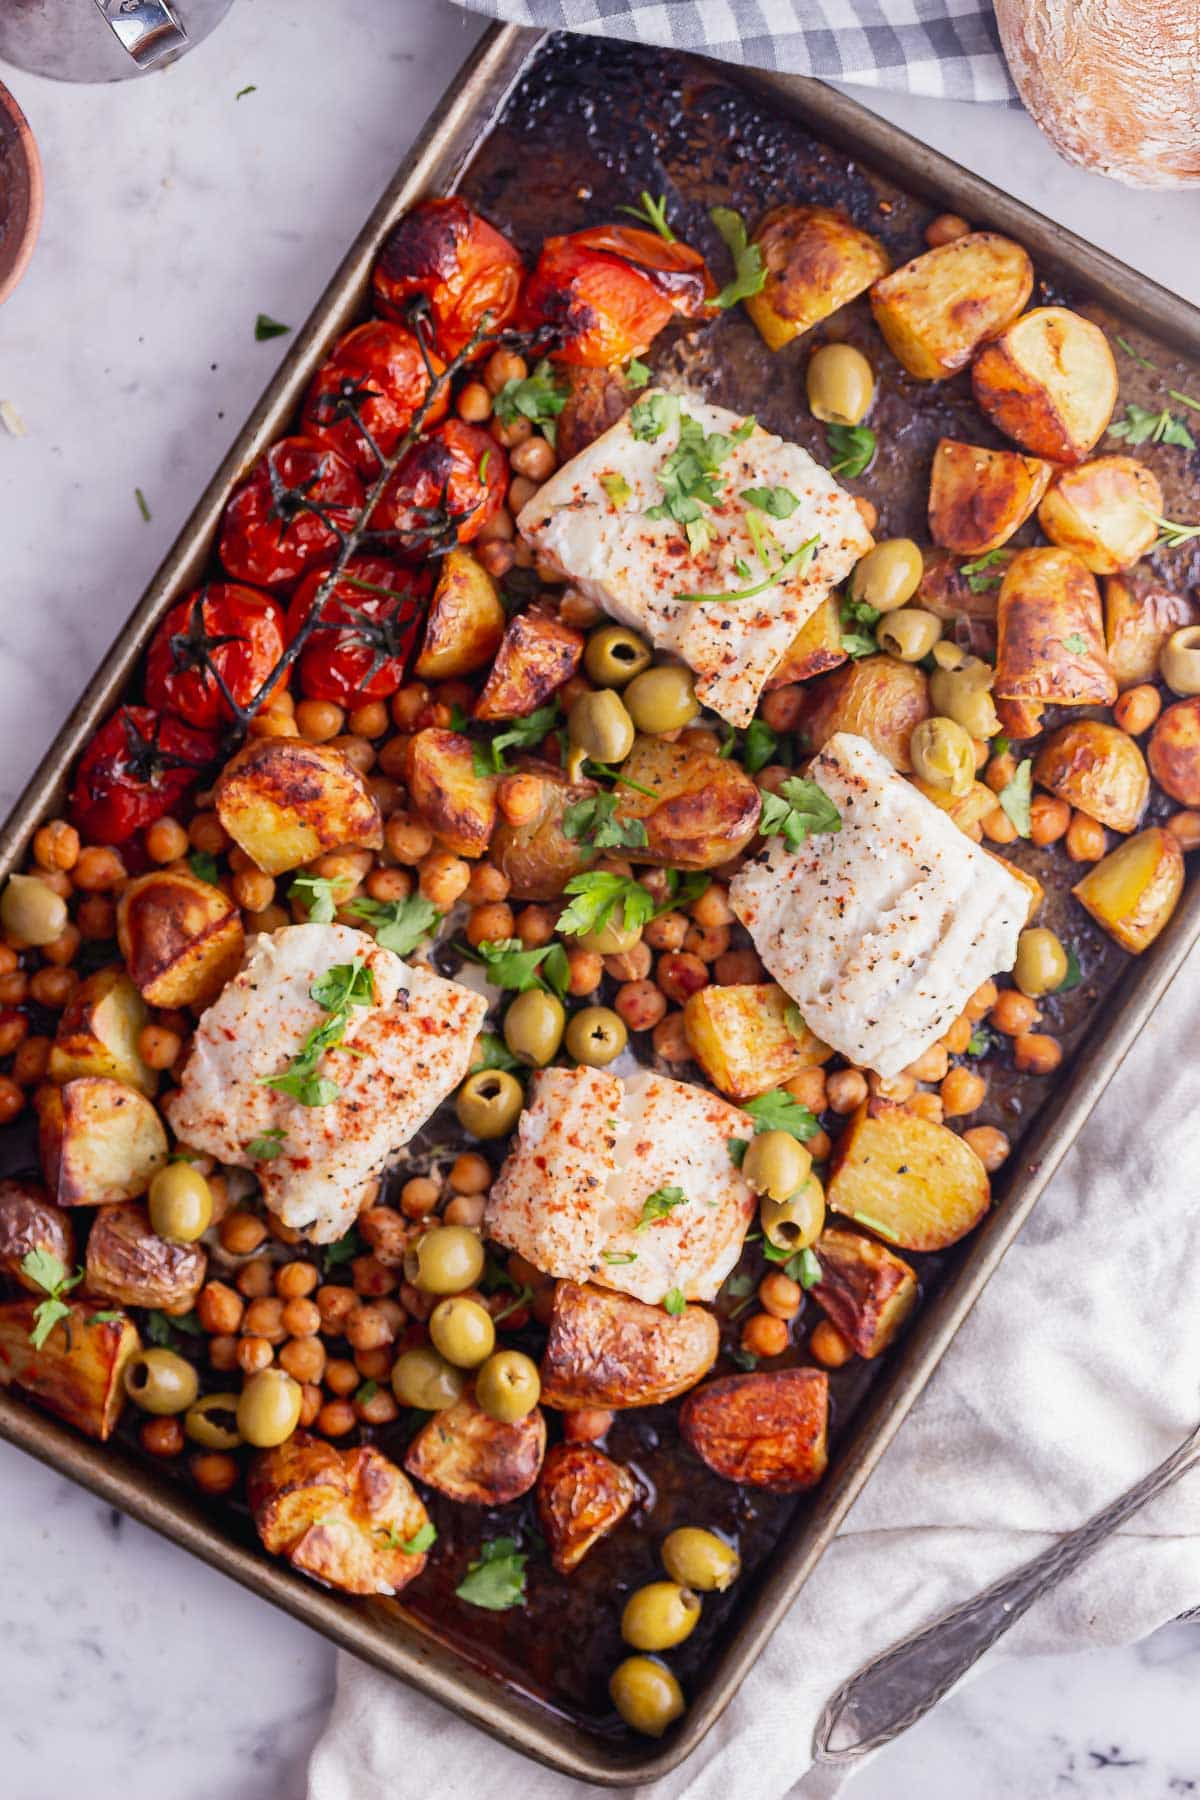 Overhead shot of cod and vegetables on a sheet pan